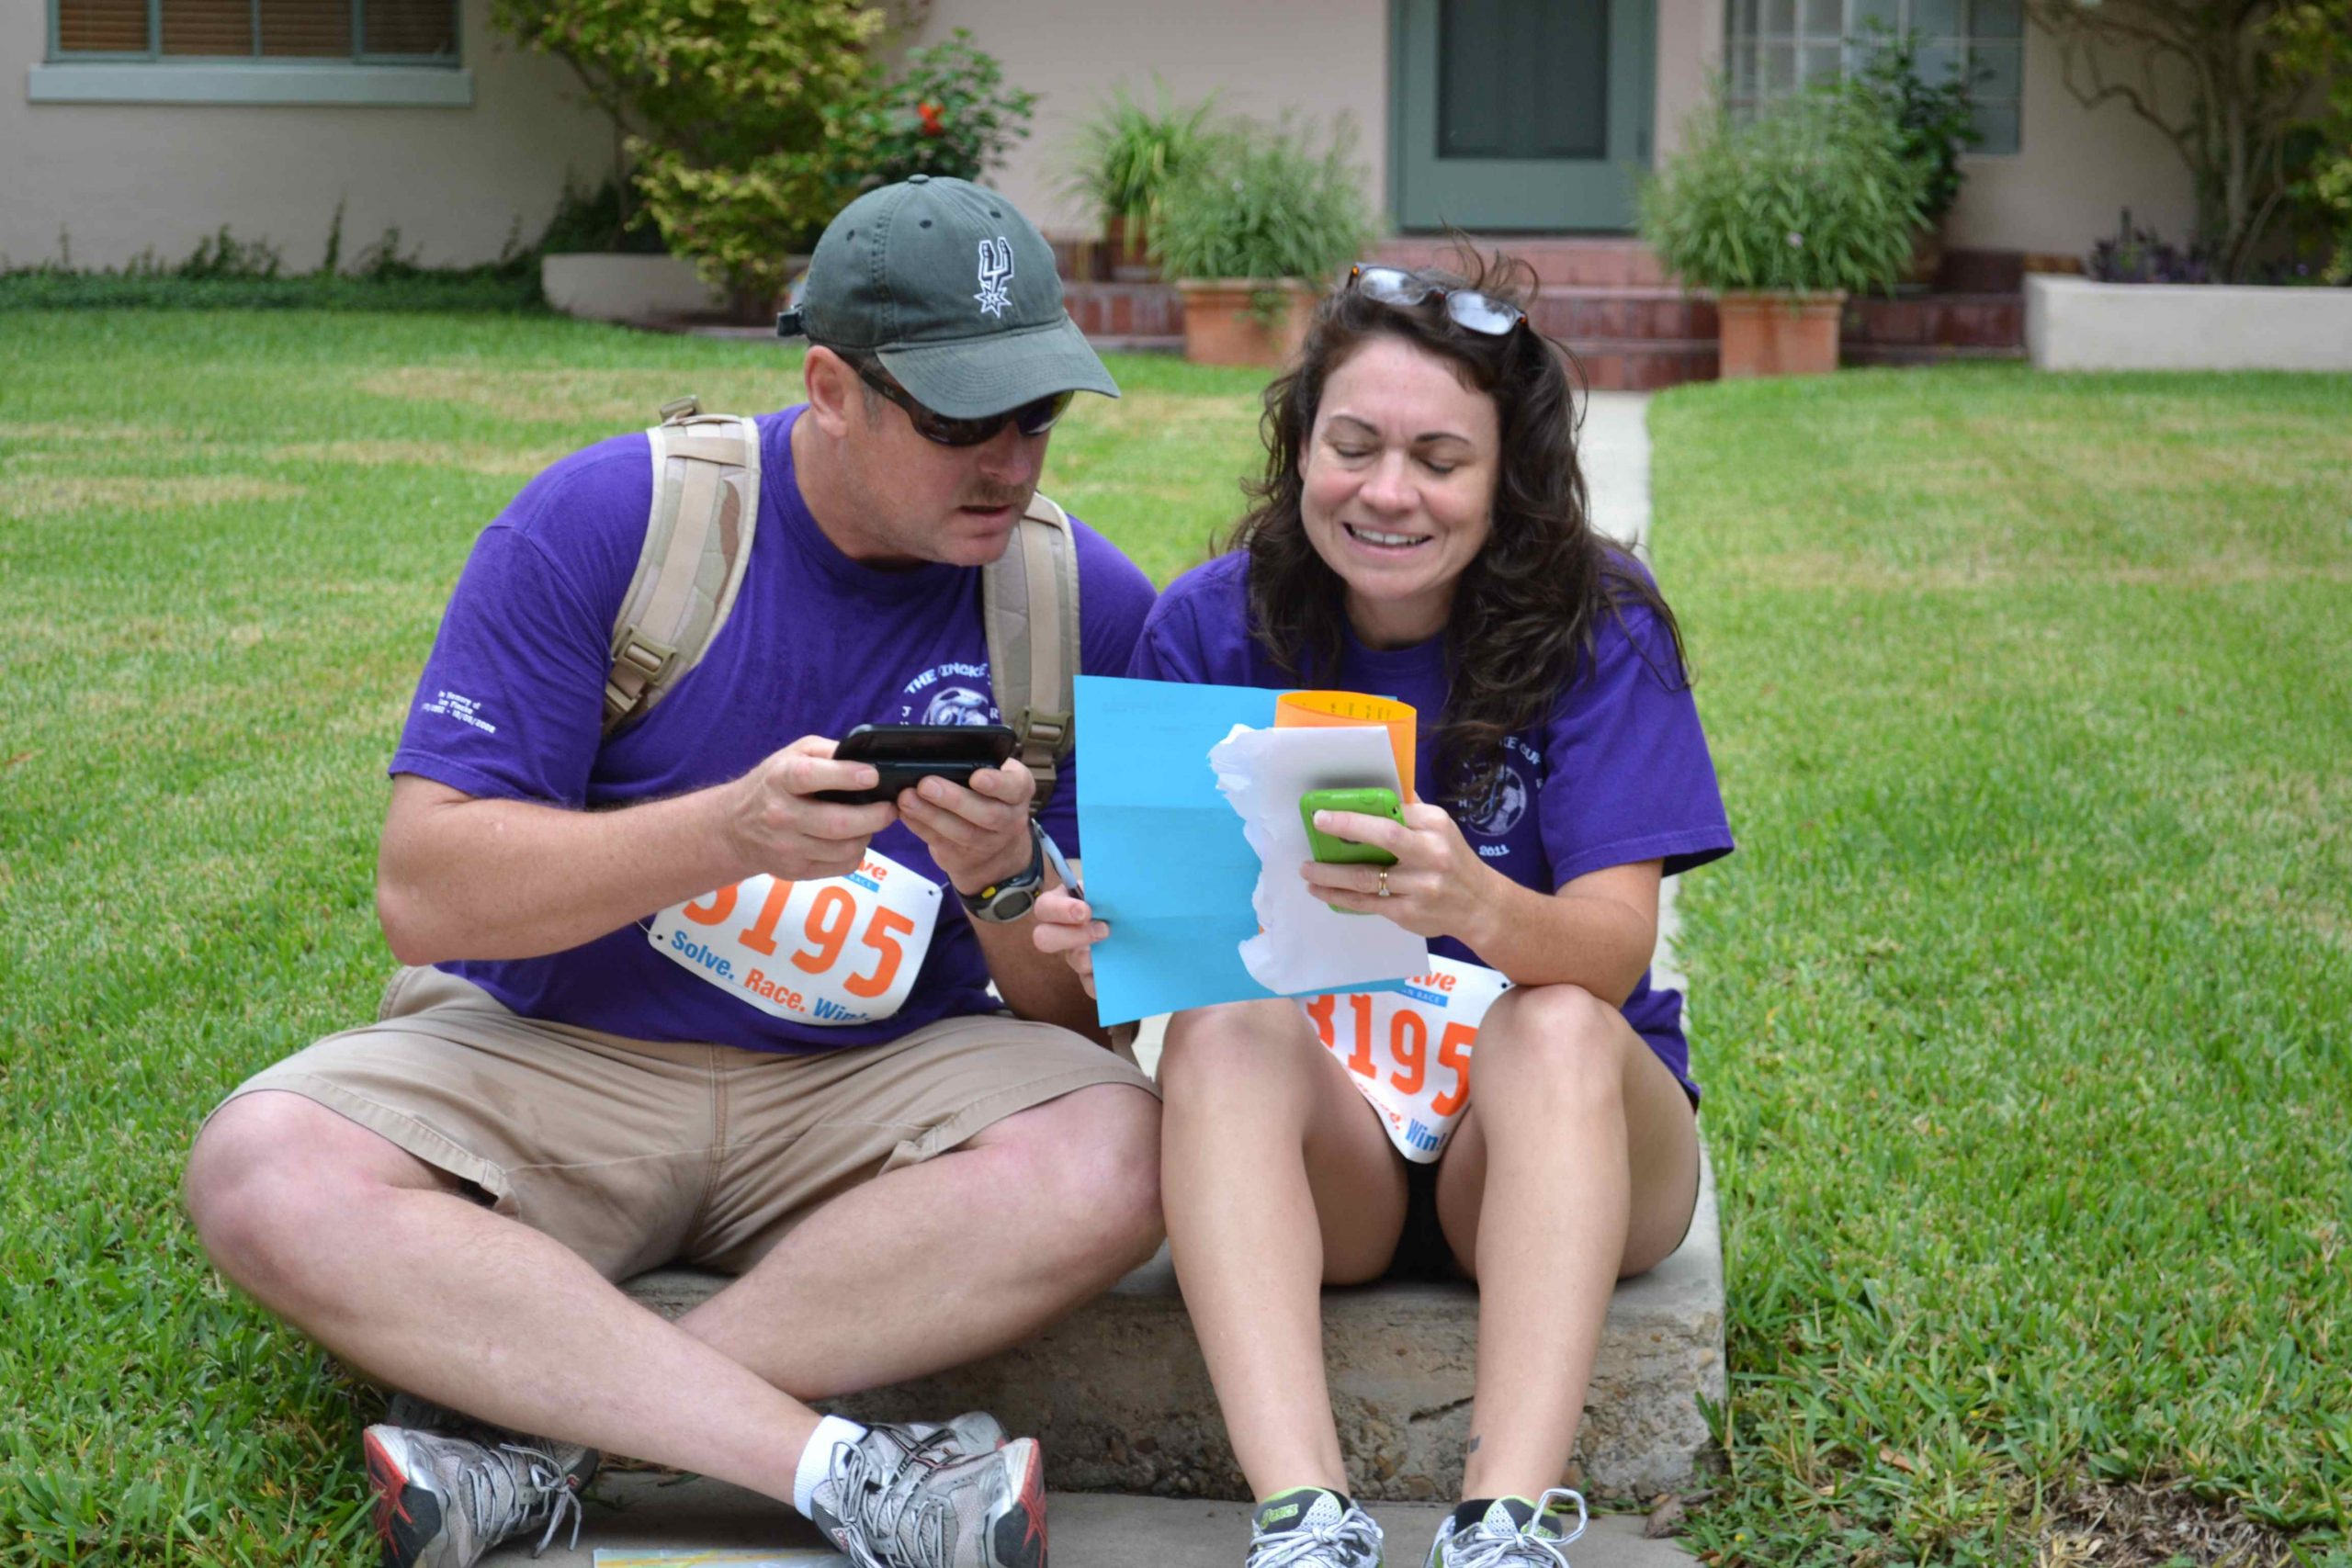 Teammates participating in the UrbanSolve City Race read and answer clues for the next checkpoint. Photo by Steve Wood.